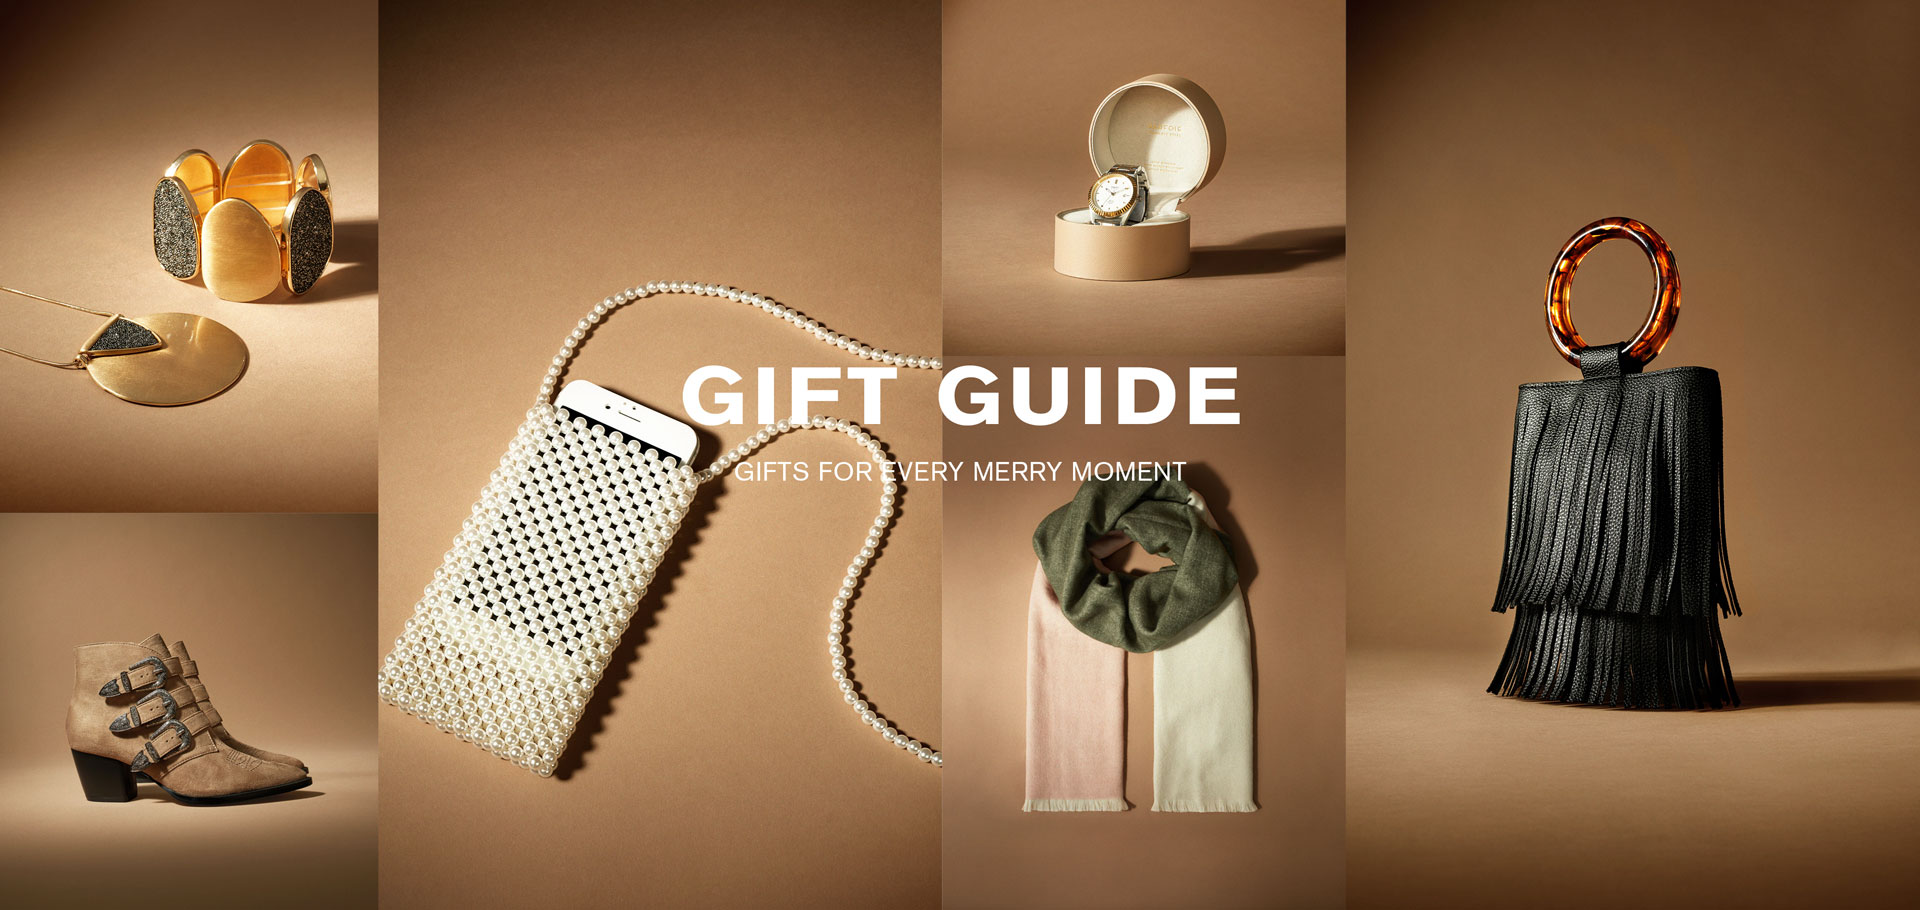 Gift Guidel